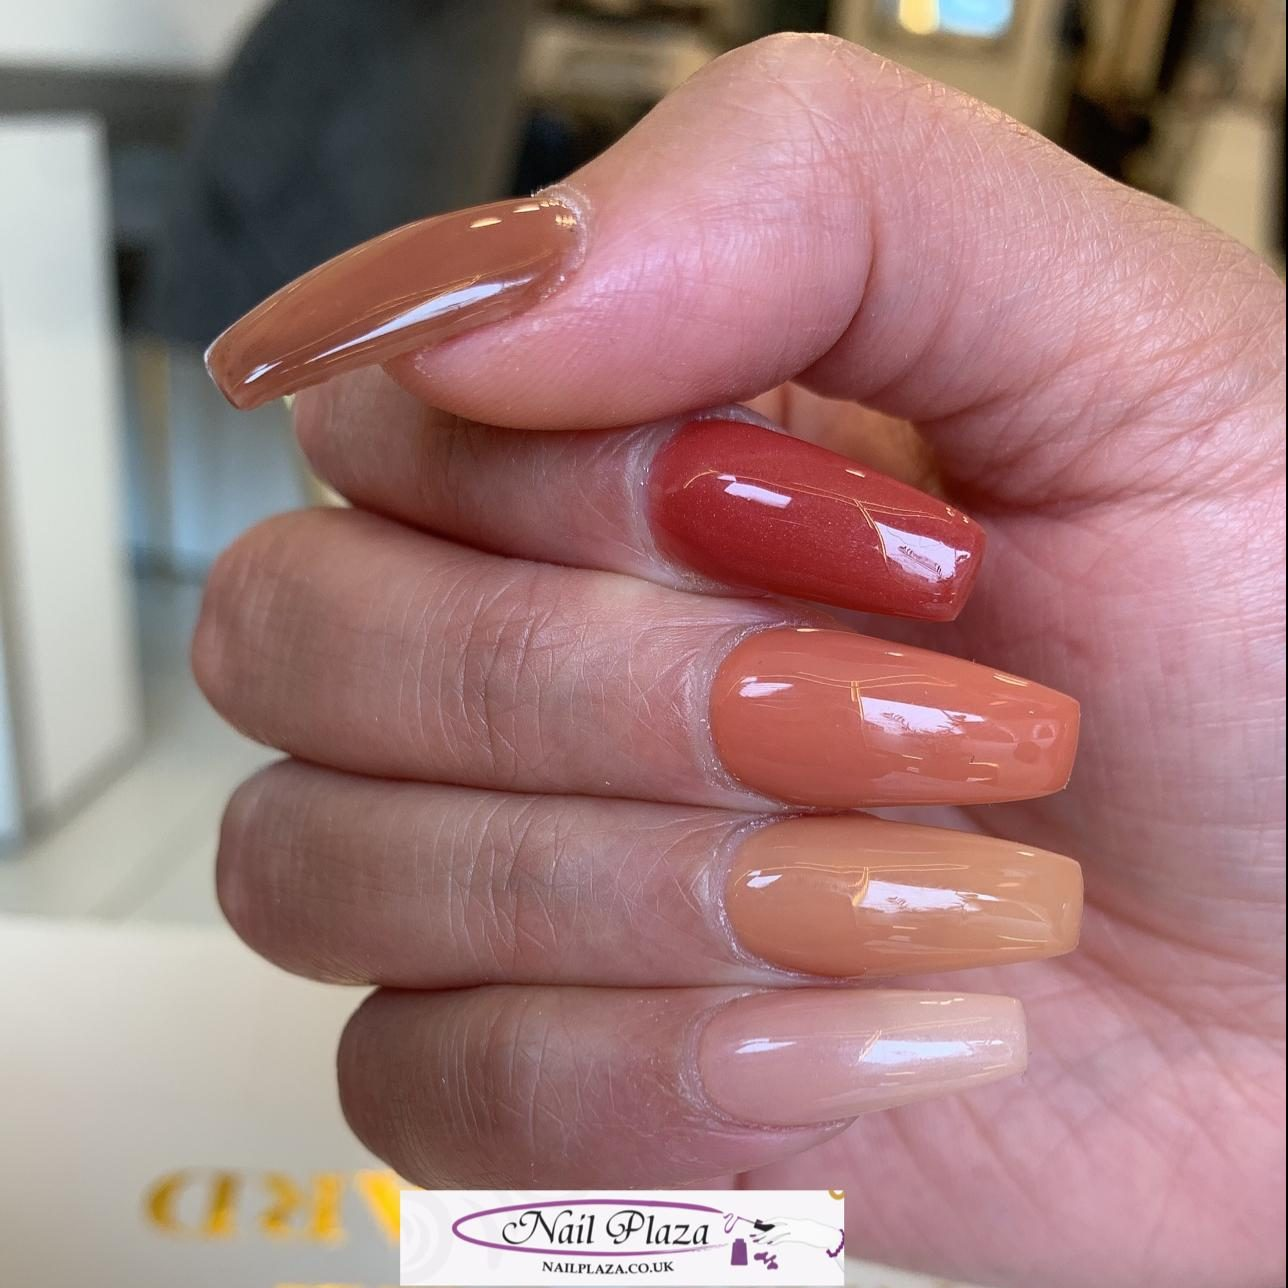 nail-plaza-twickenham-nail-design-061120-13